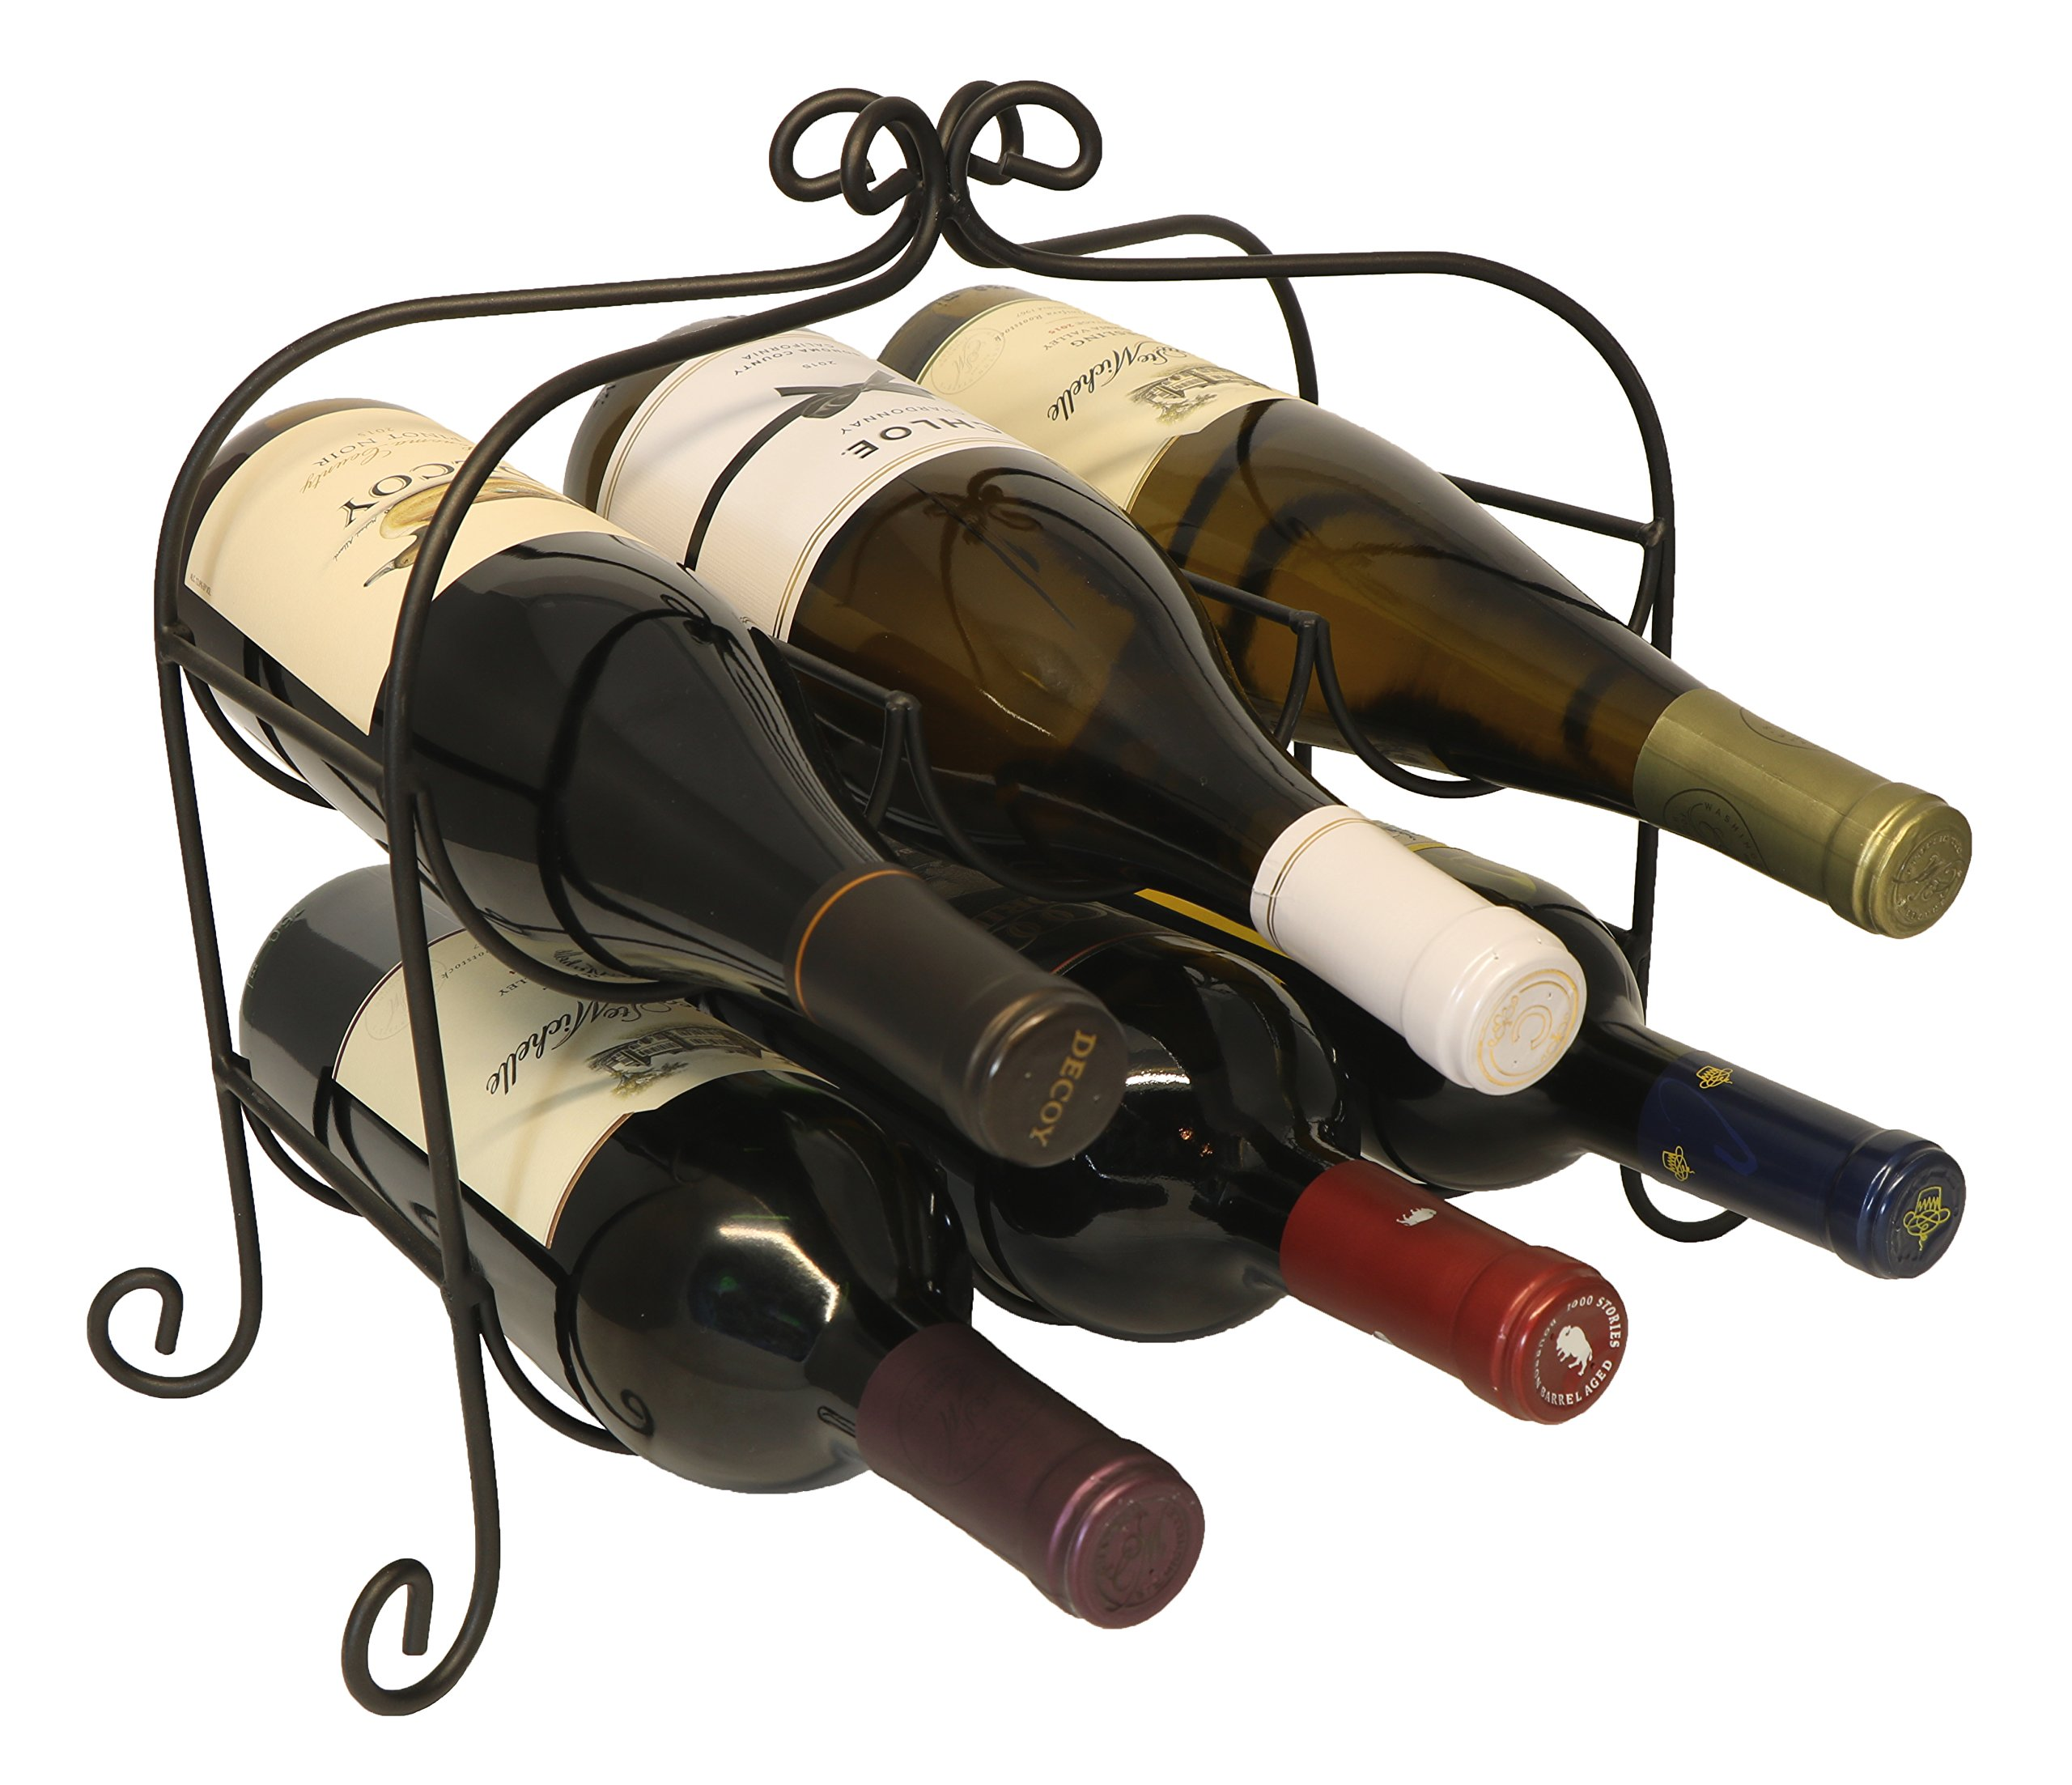 Annabel 6 Bottle Metal Wine Rack for Tabletop or Countertop by KitchenEdge, Free Standing, Black, Wrought Iron